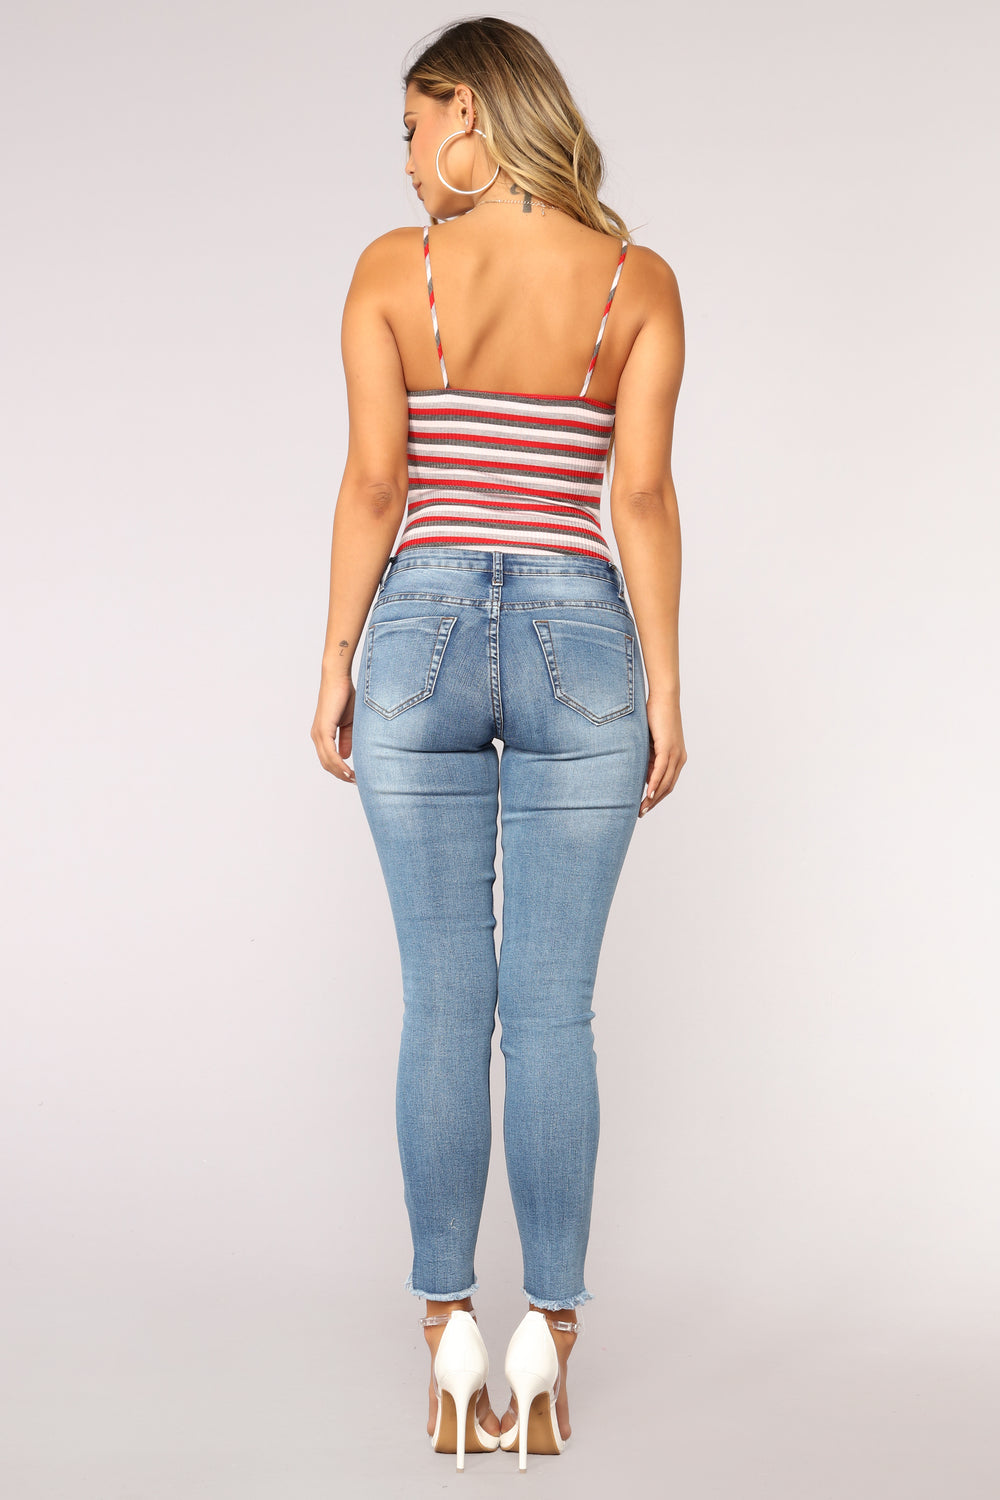 Knot Interested Striped Bodysuit - Grey Combo